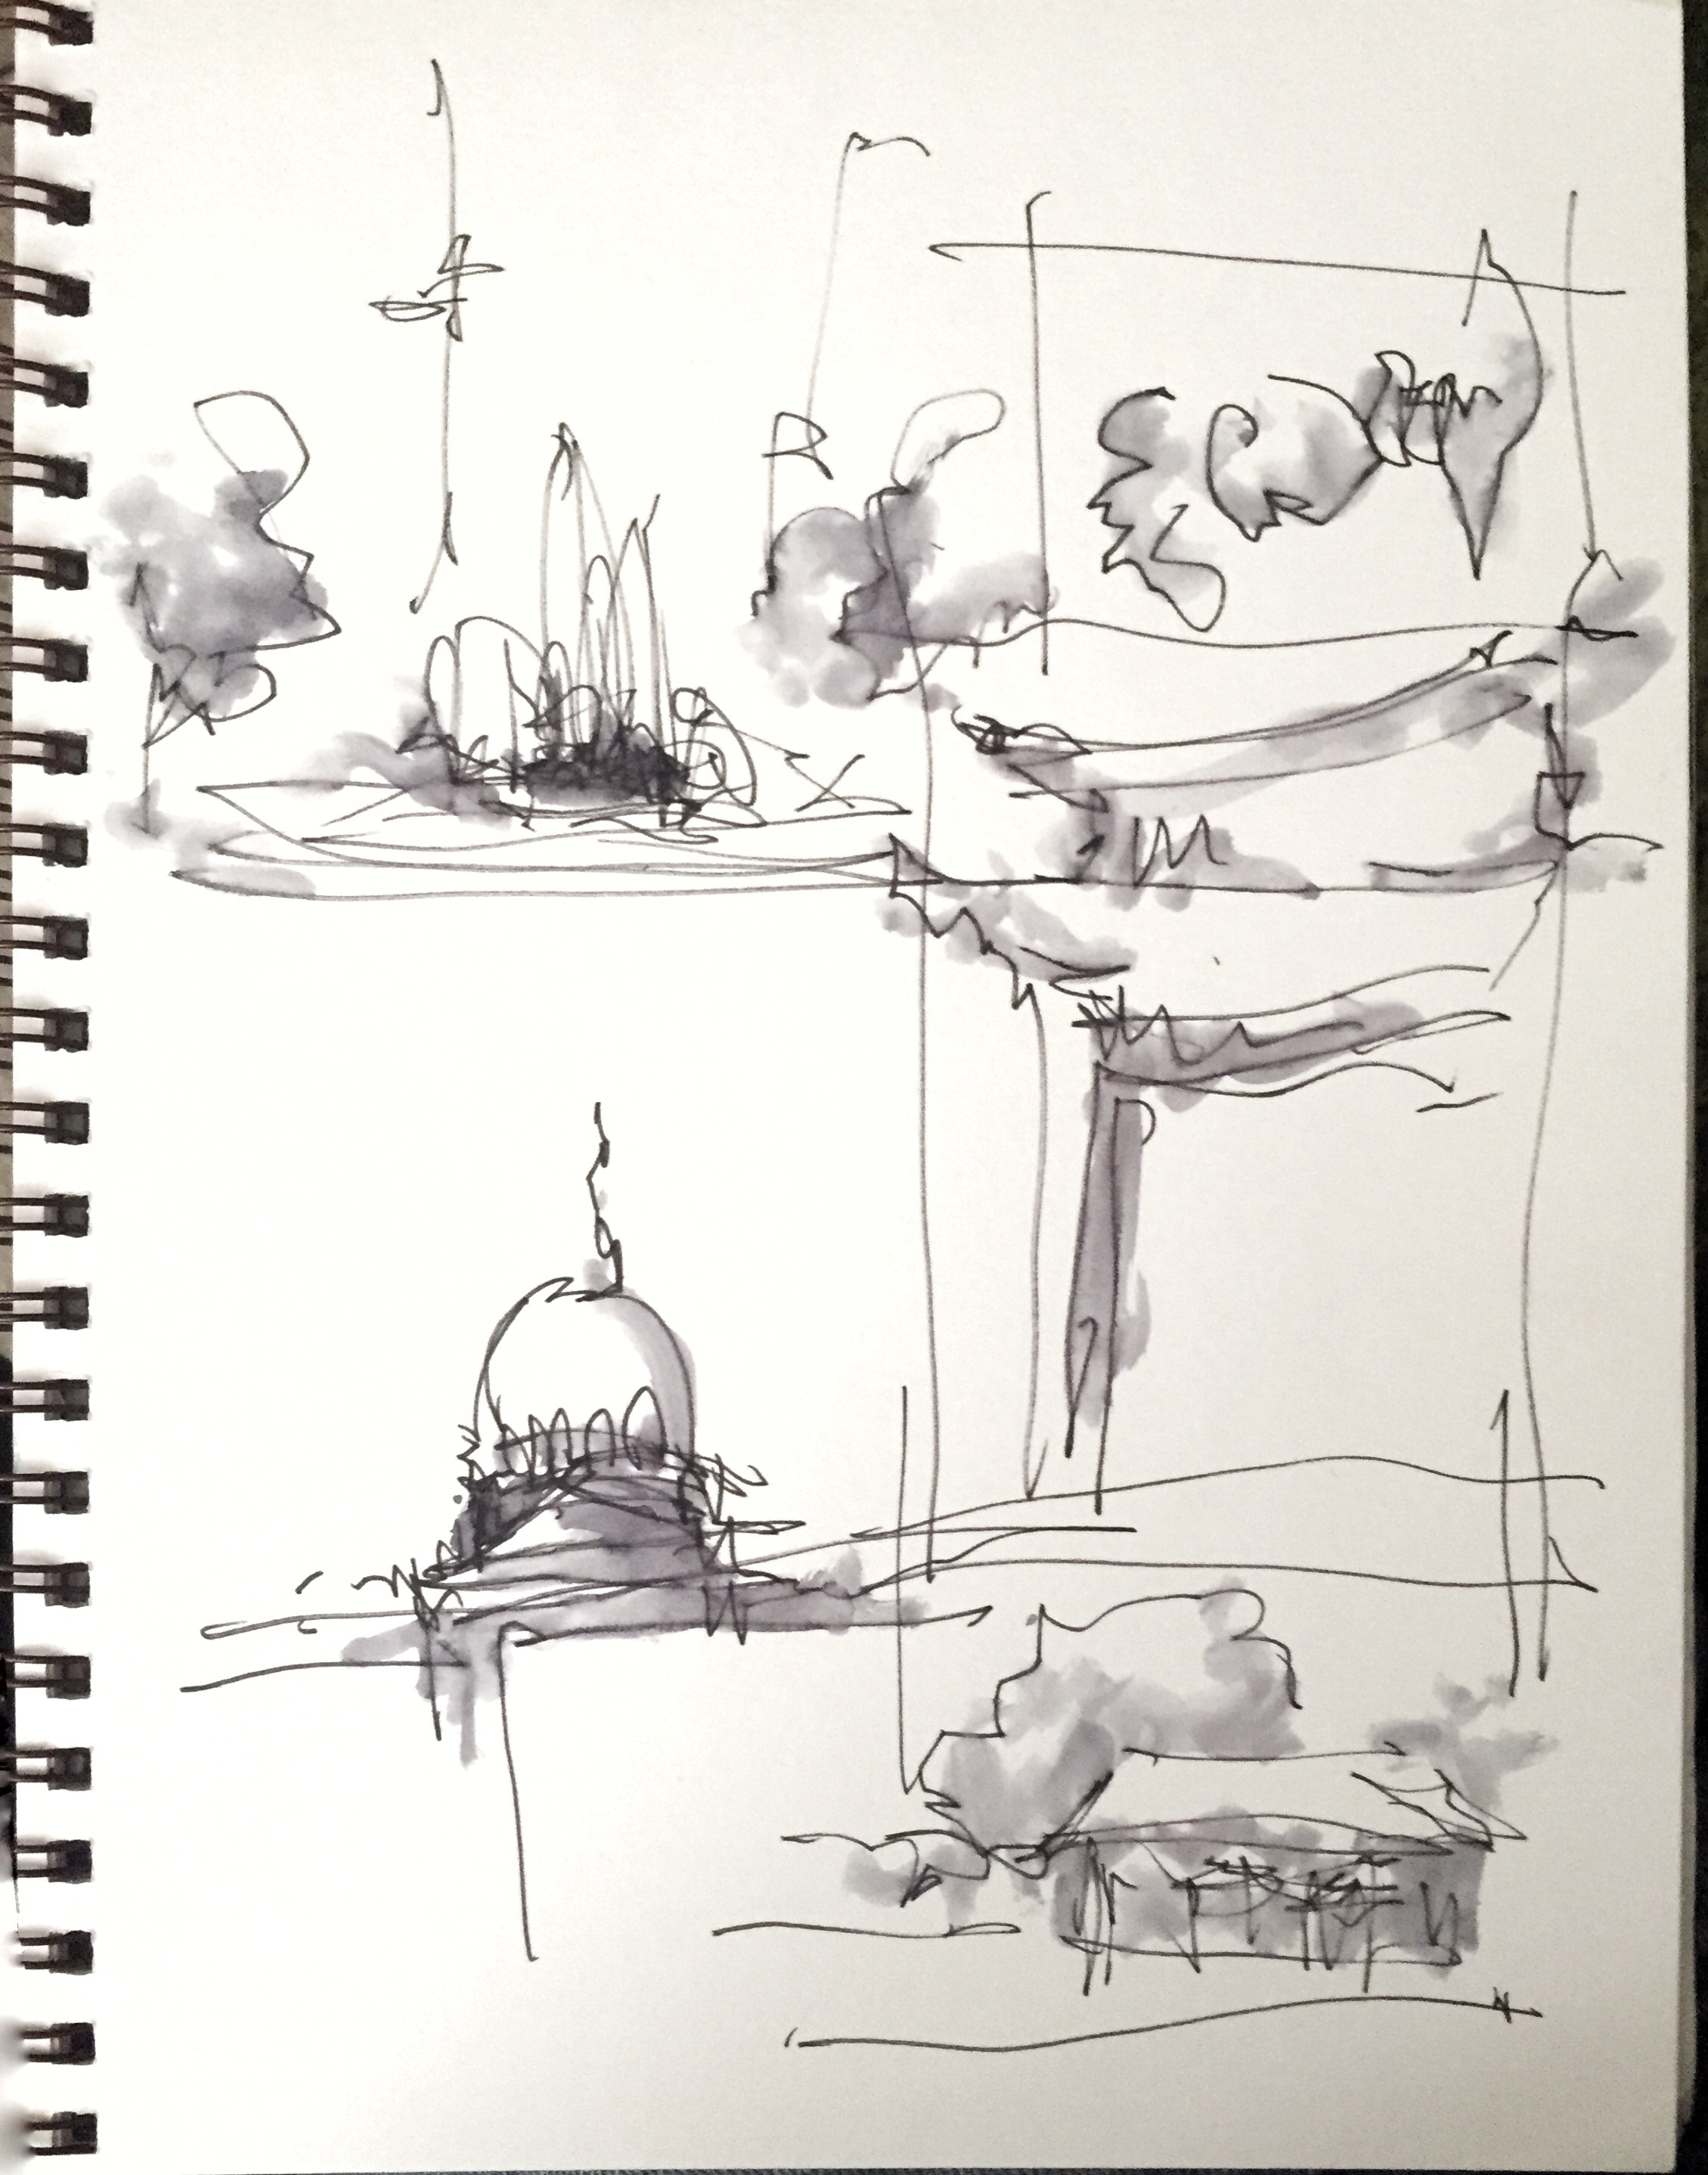 Sketching With Watersoluble Ink (Part 2)